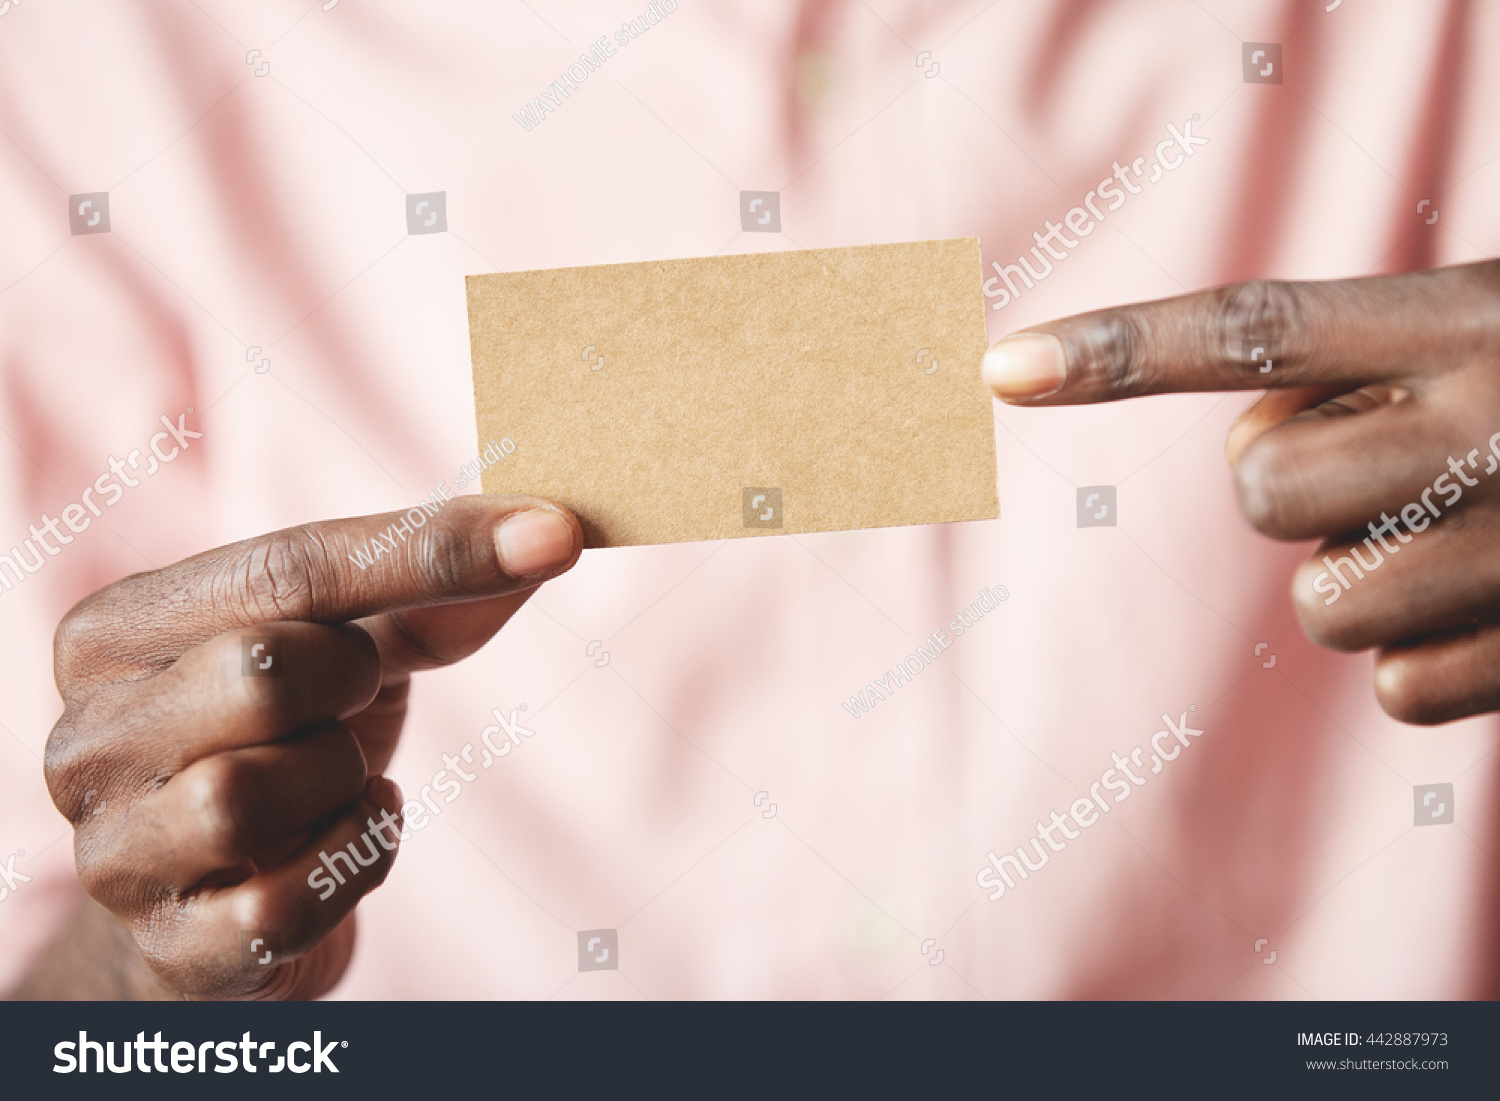 Close Shot Blank Modern Parchment Business Stock Photo 442887973 ...